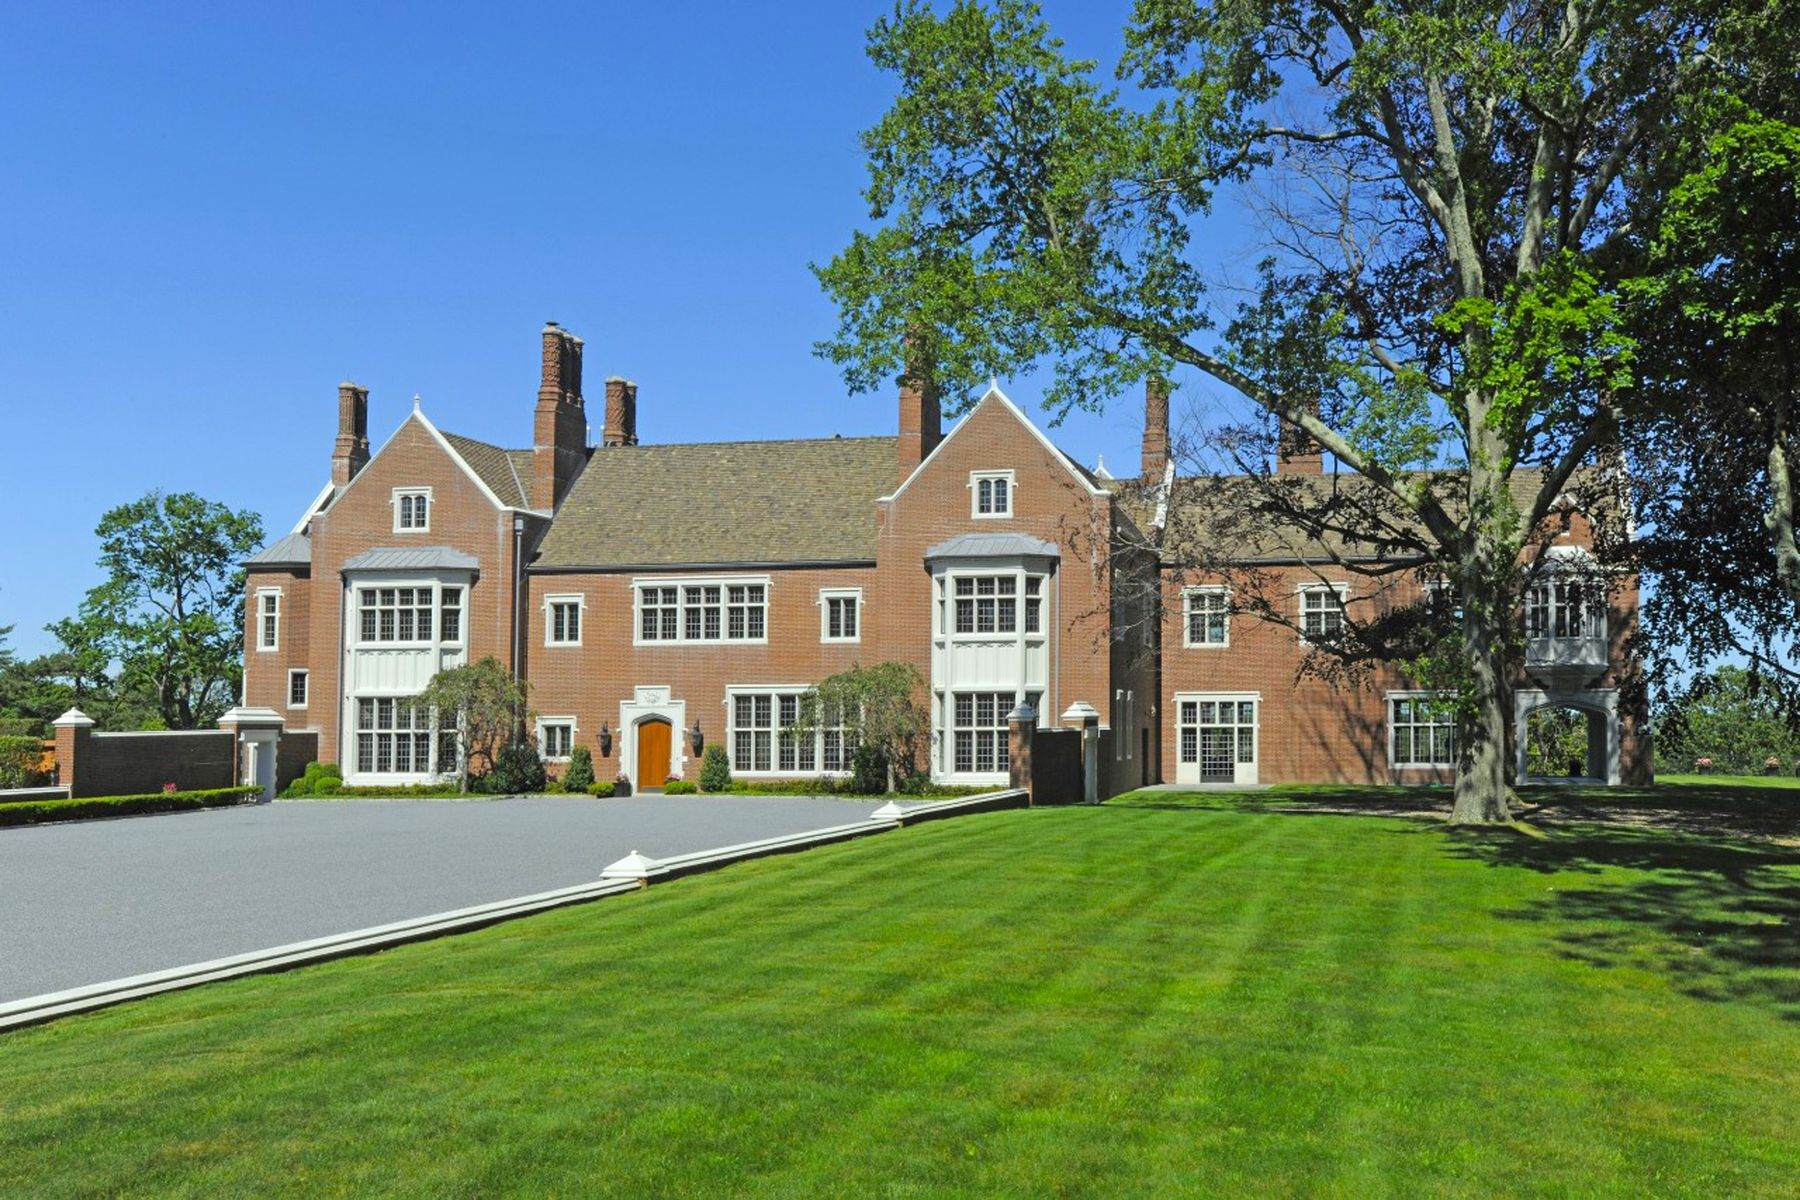 Single Family Homes for Sale at Round Hill Manor 521 Round Hill Road Greenwich, Connecticut 06831 United States